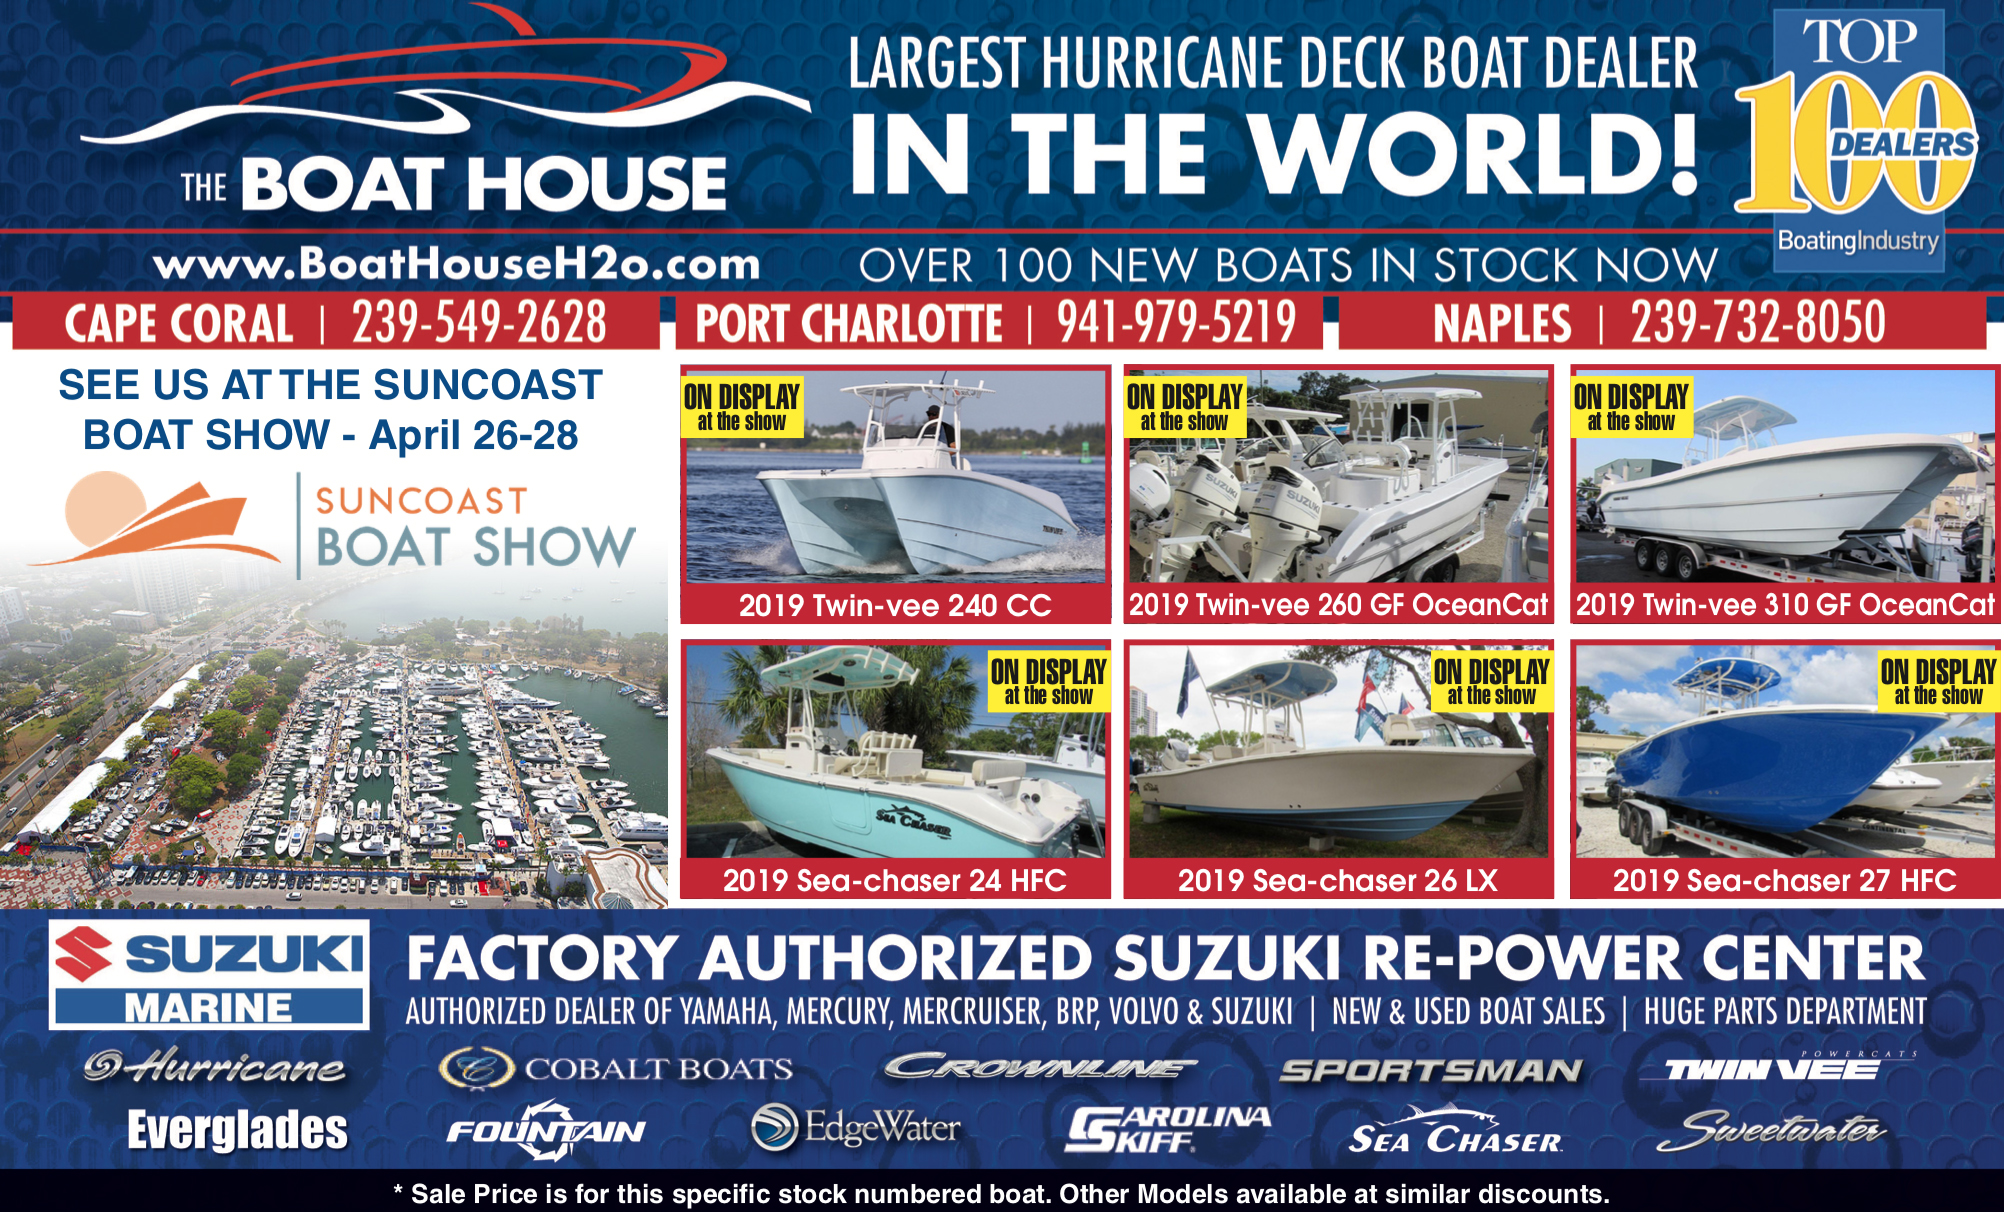 Event Calendar - The Boat House